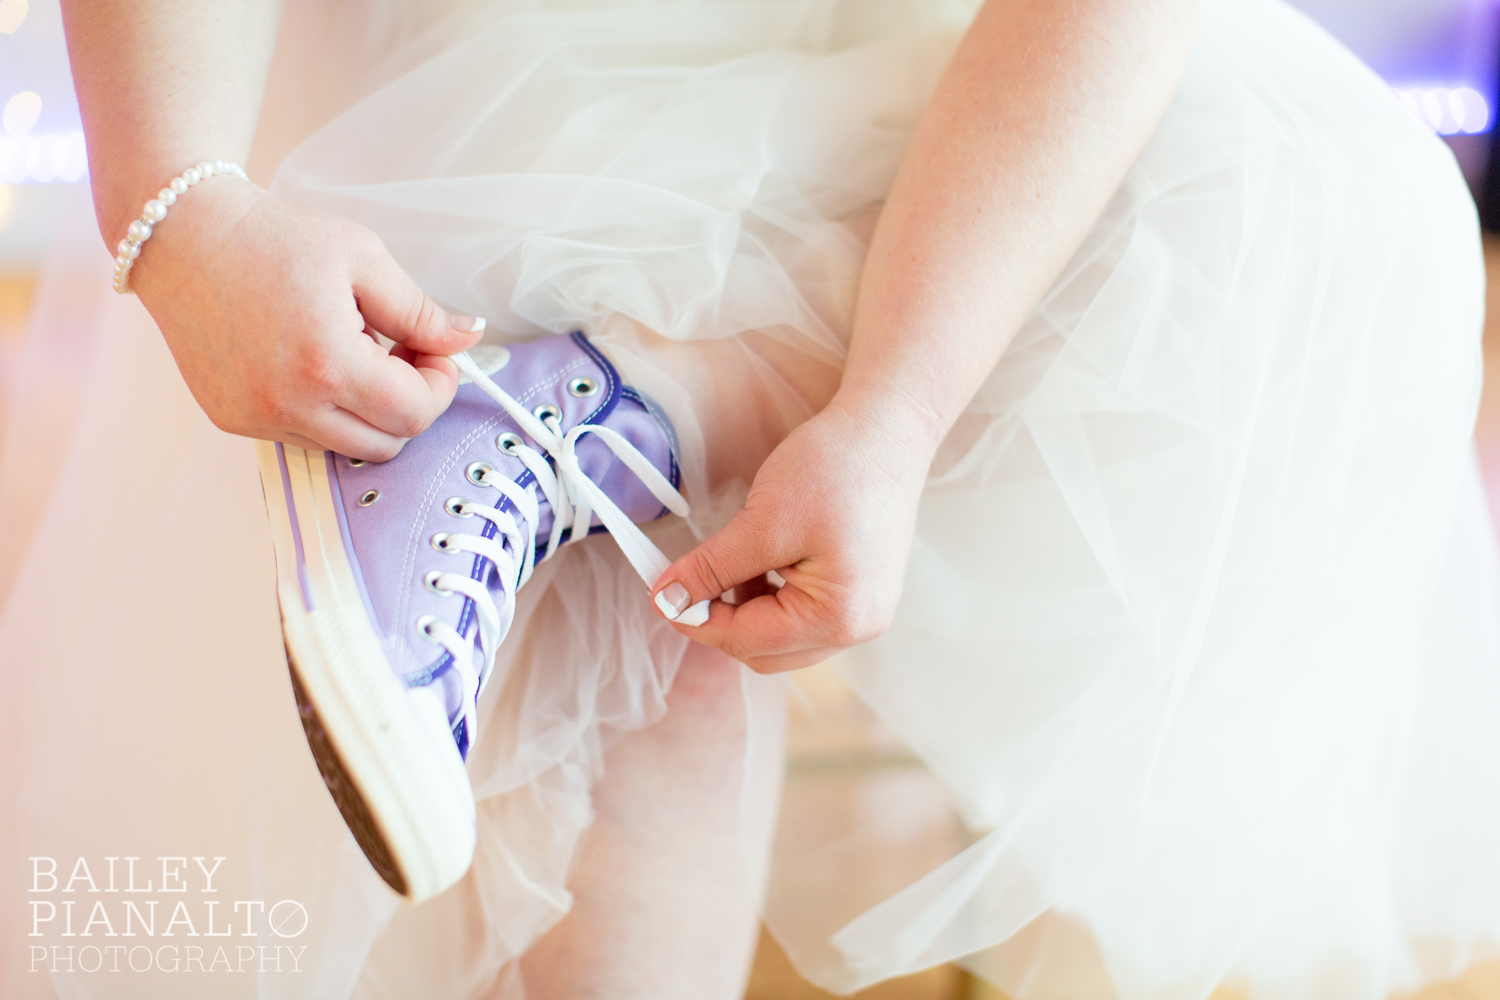 Bride Getting Ready at Purple & Gray Down-to-Earth Spring Wedding with Converse All Stars  | Uptown Theater | Kansas City, MO